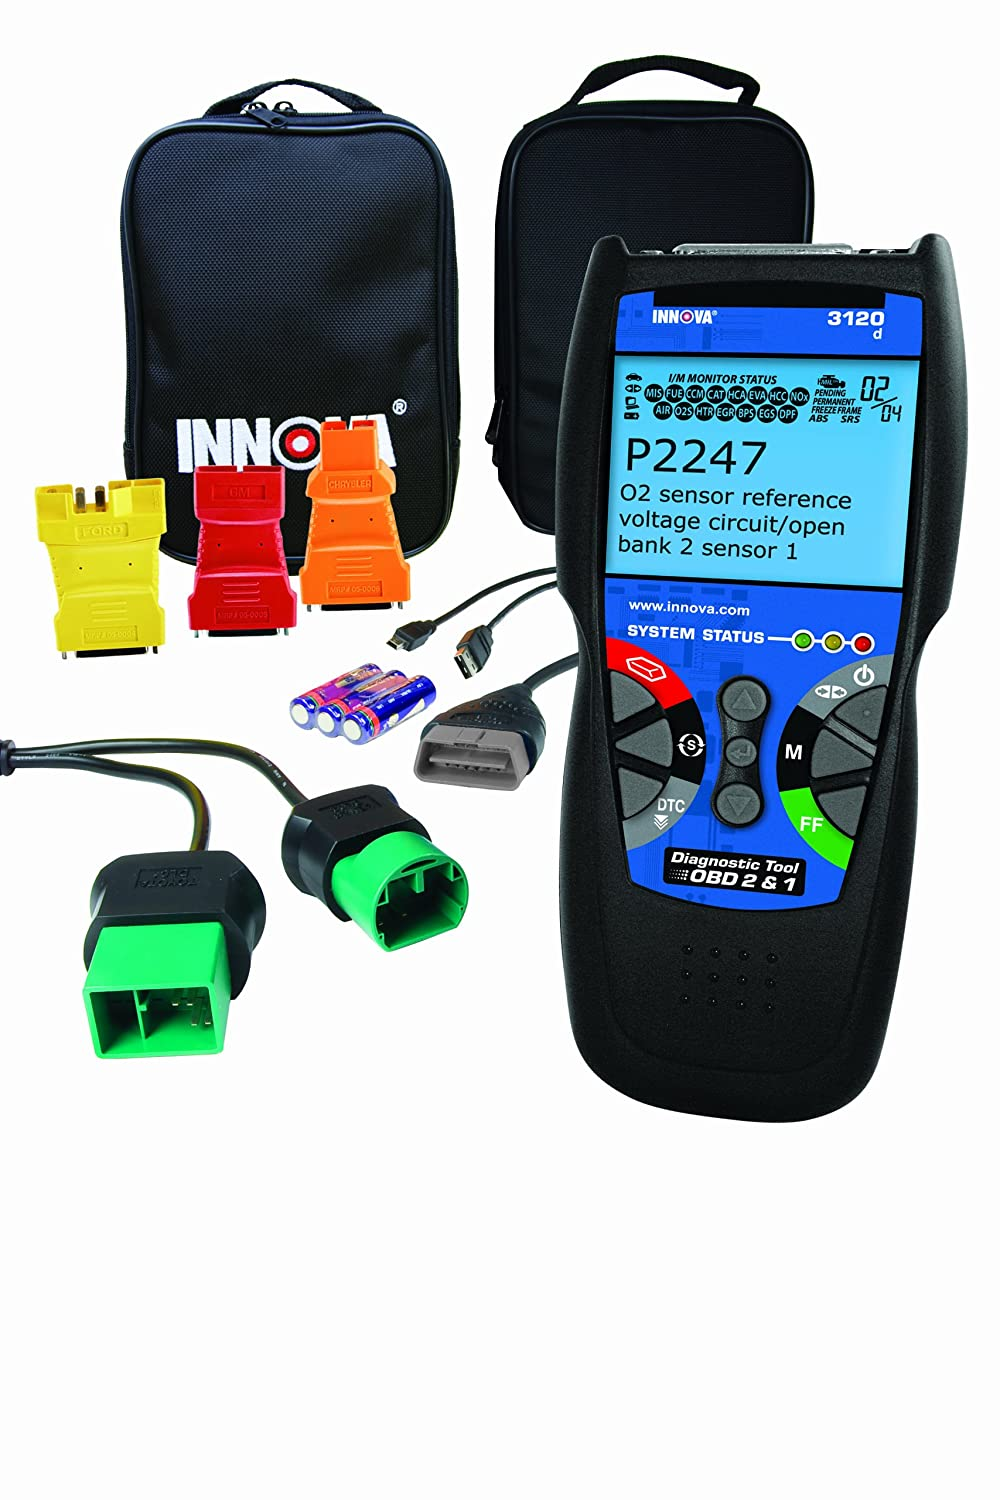 Innova 3120 Diagnostic Scan Tool Code Reader For Obd1 Aldl Wiring 1997 Toyota 4runner And Obd2 Vehicles Automotive